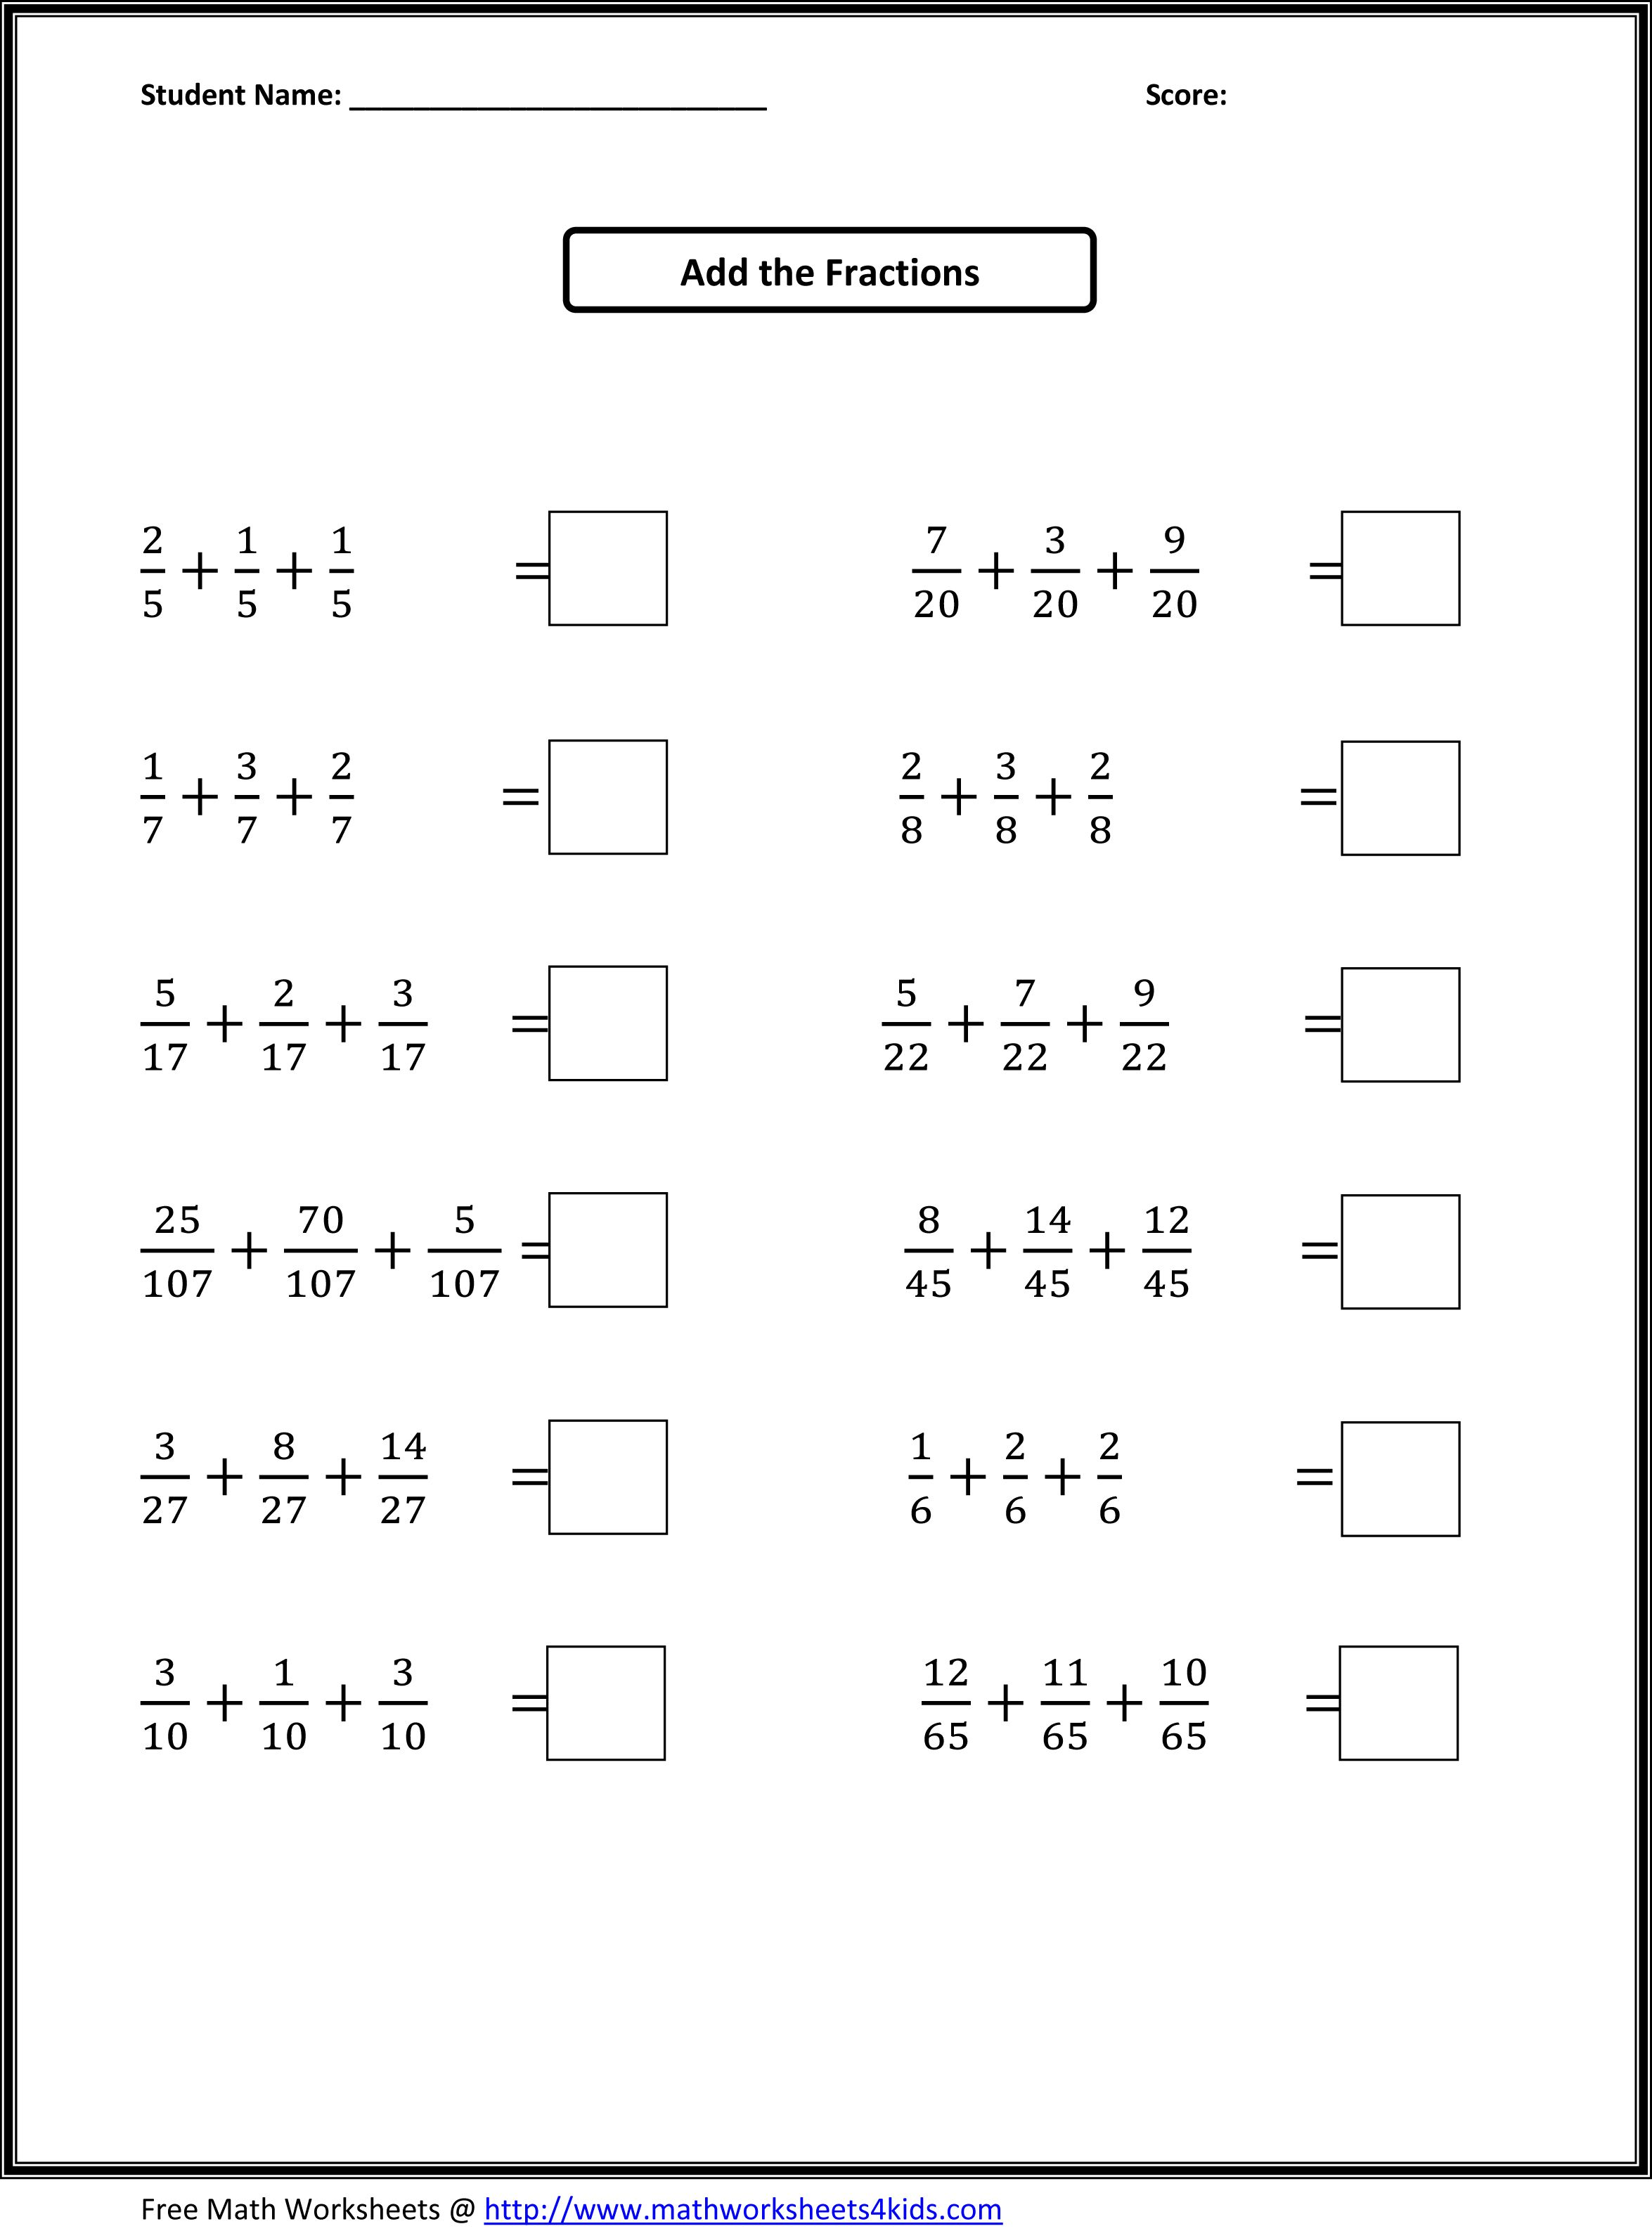 math worksheet : fractions easy work and math worksheets on pinterest : Maths Worksheets For Class 6